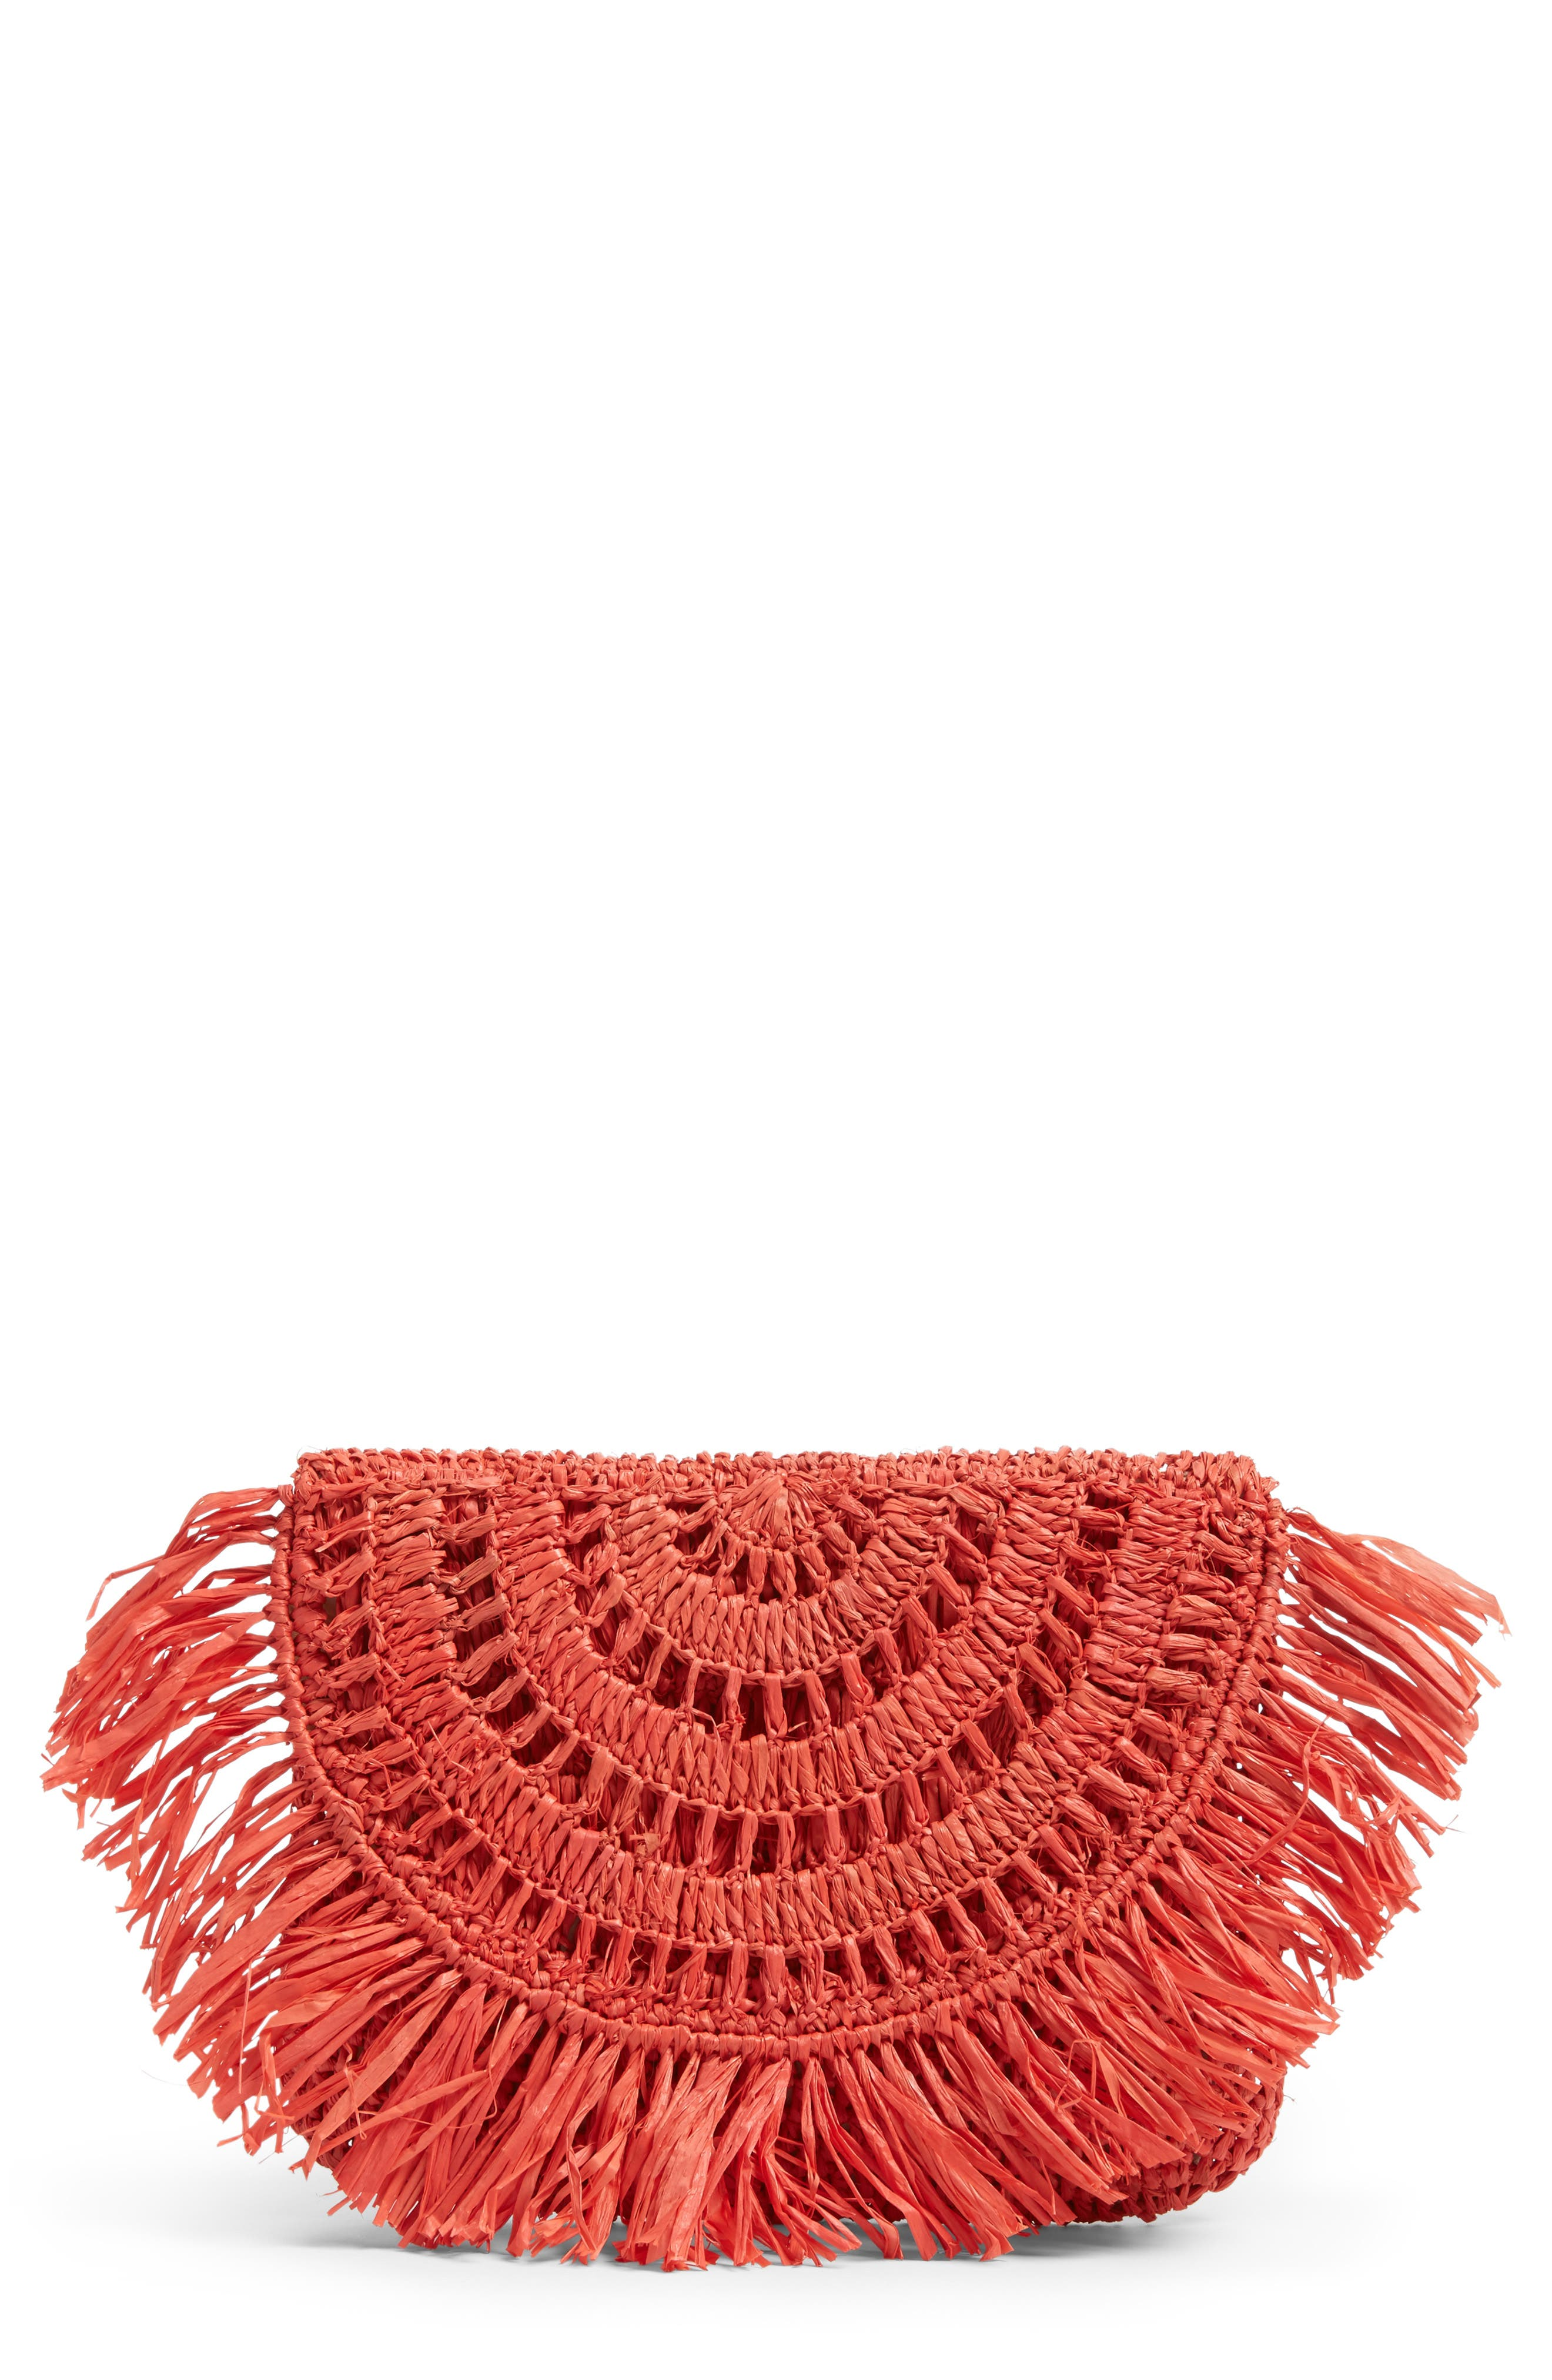 Alternate Image 1 Selected - Mar y Sol Mia Woven Raffia Clutch